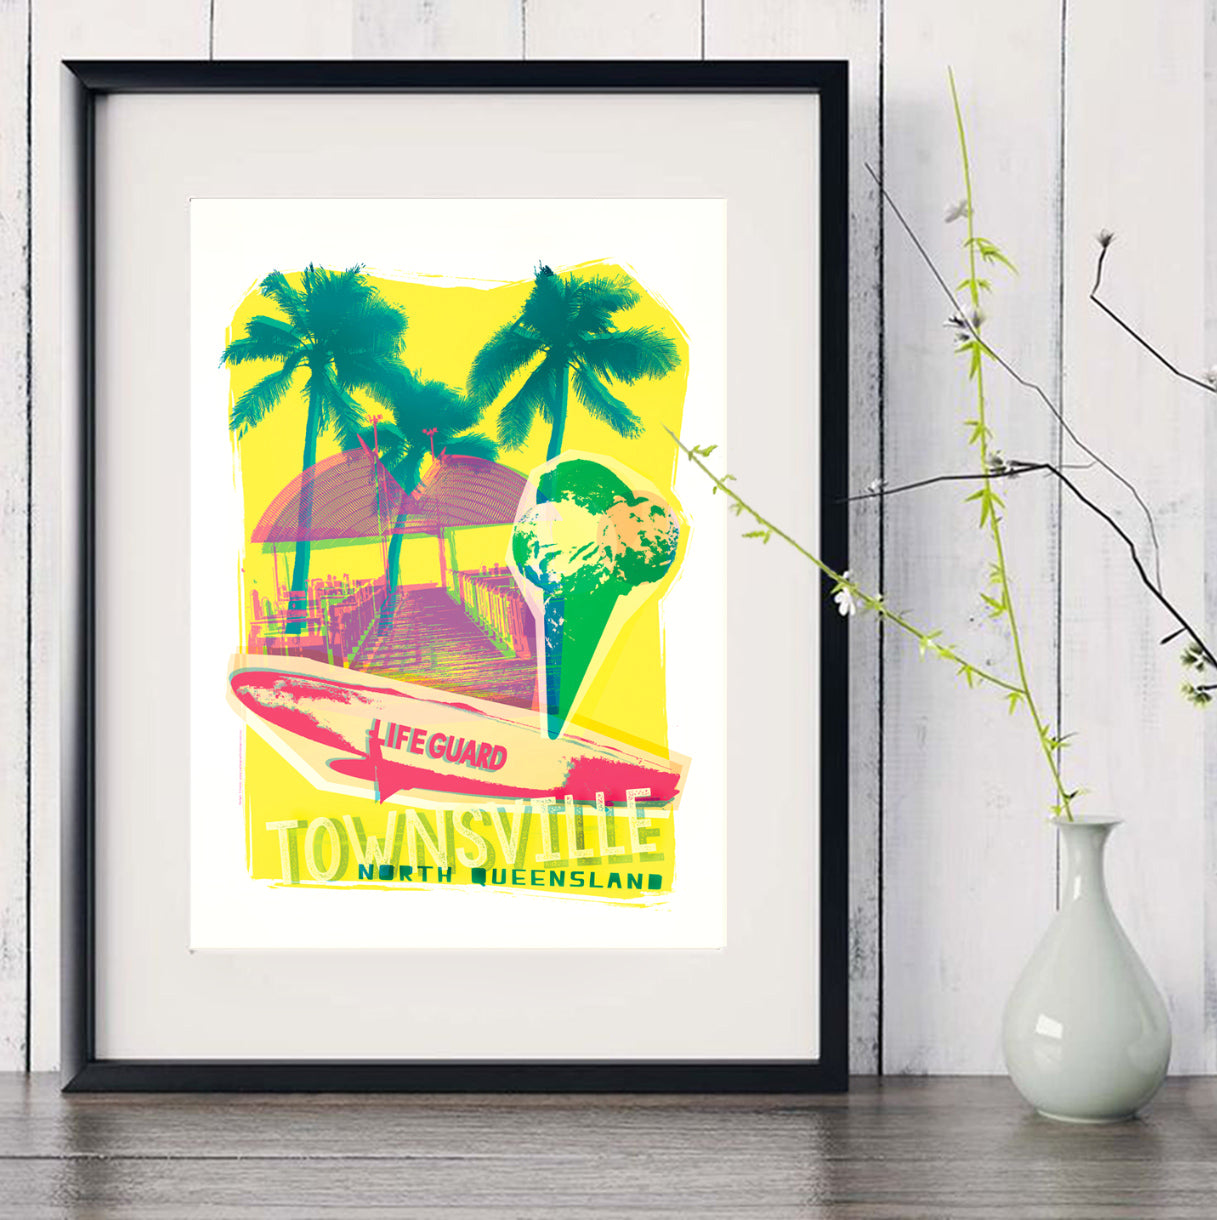 A3 Townville Poster 'Lifeguard' in black frame